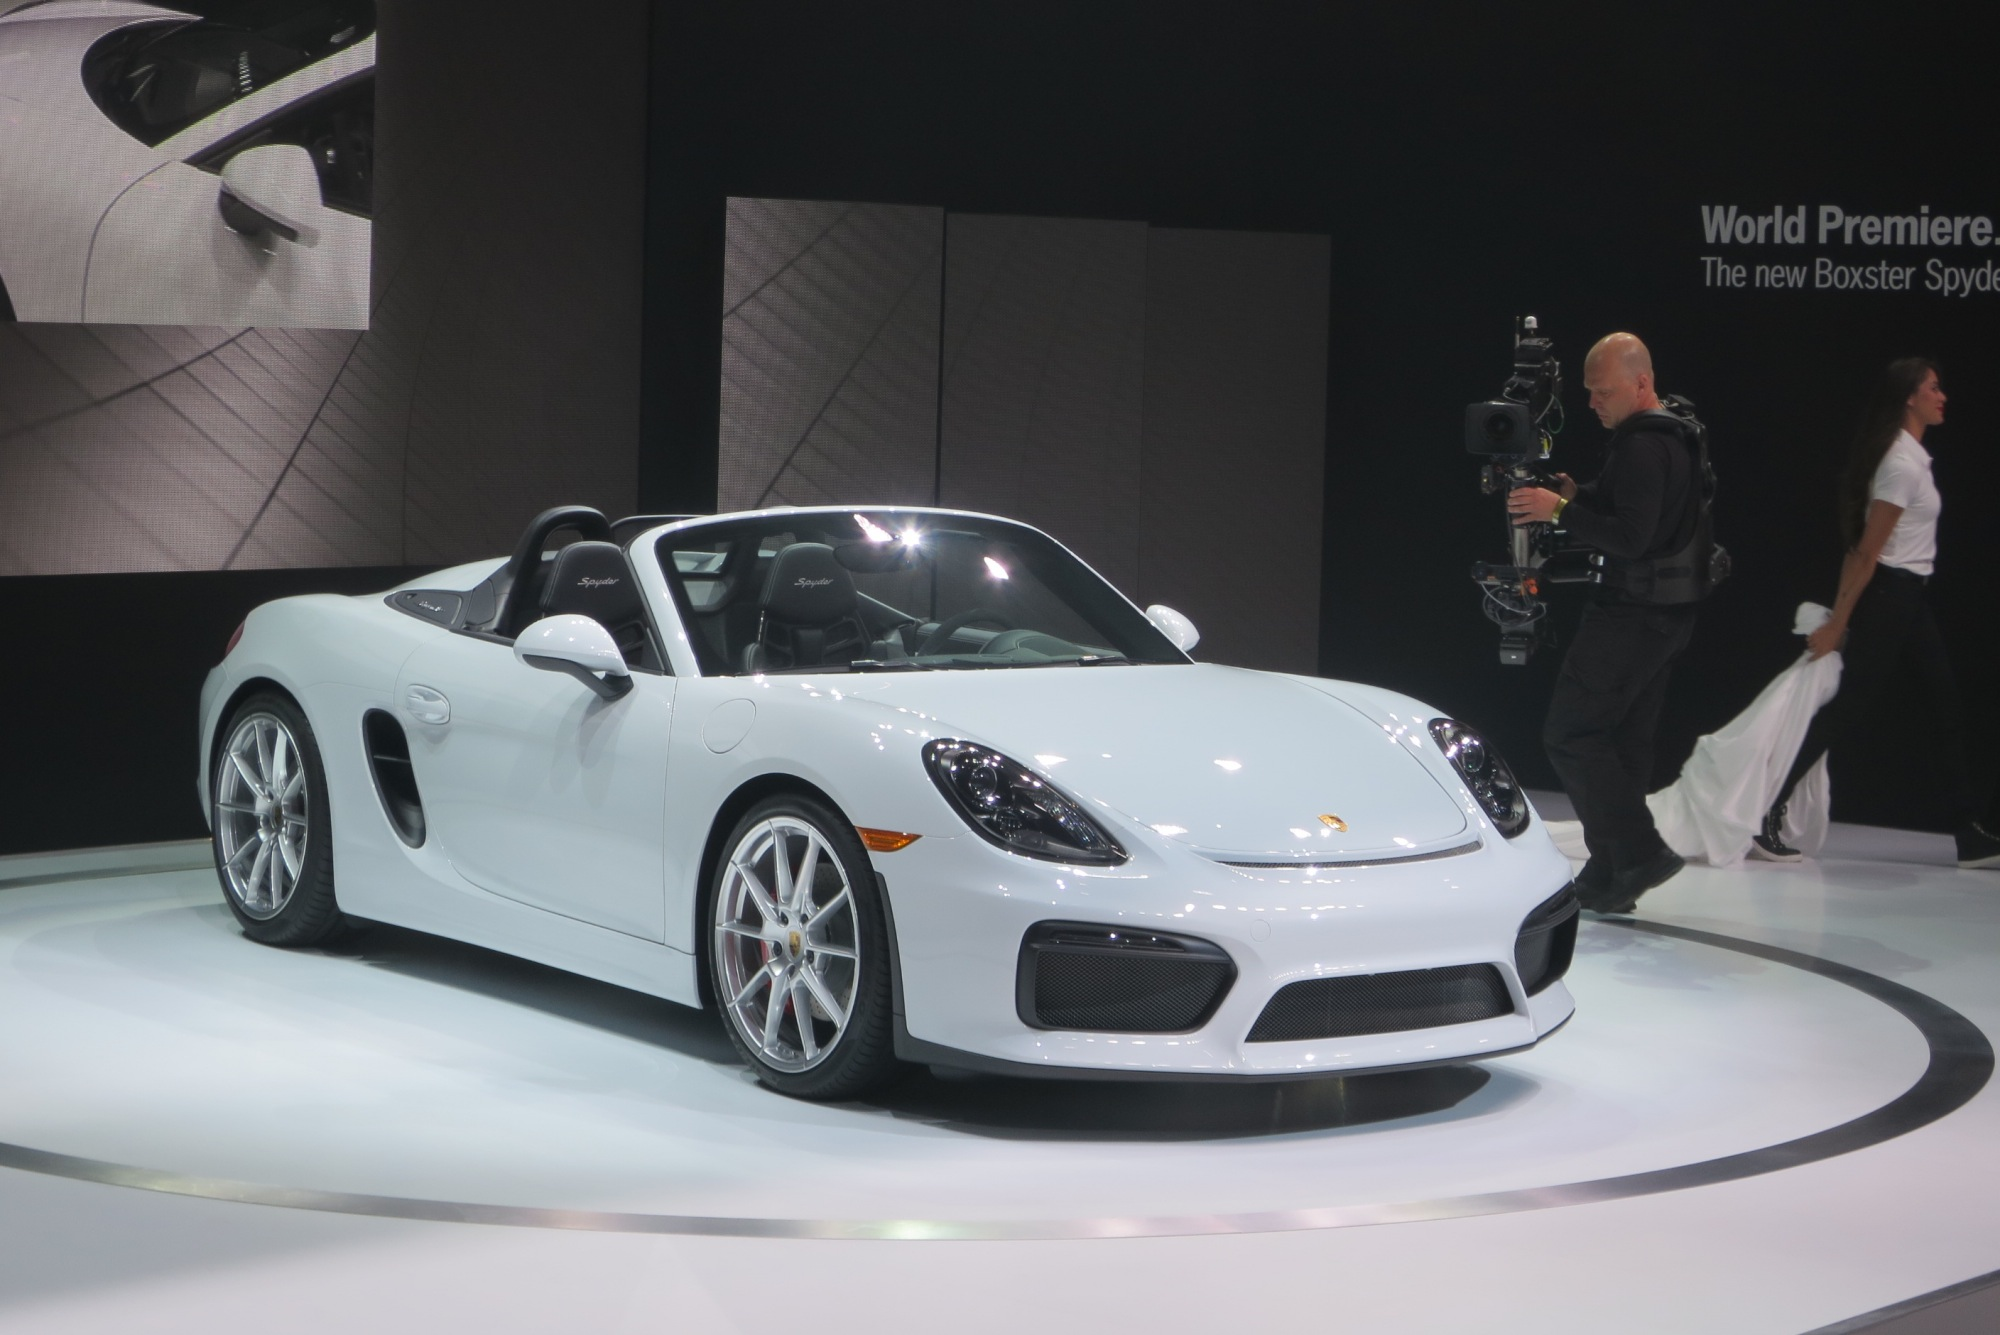 New York Porsche Goes Old School with Boxster Spyder